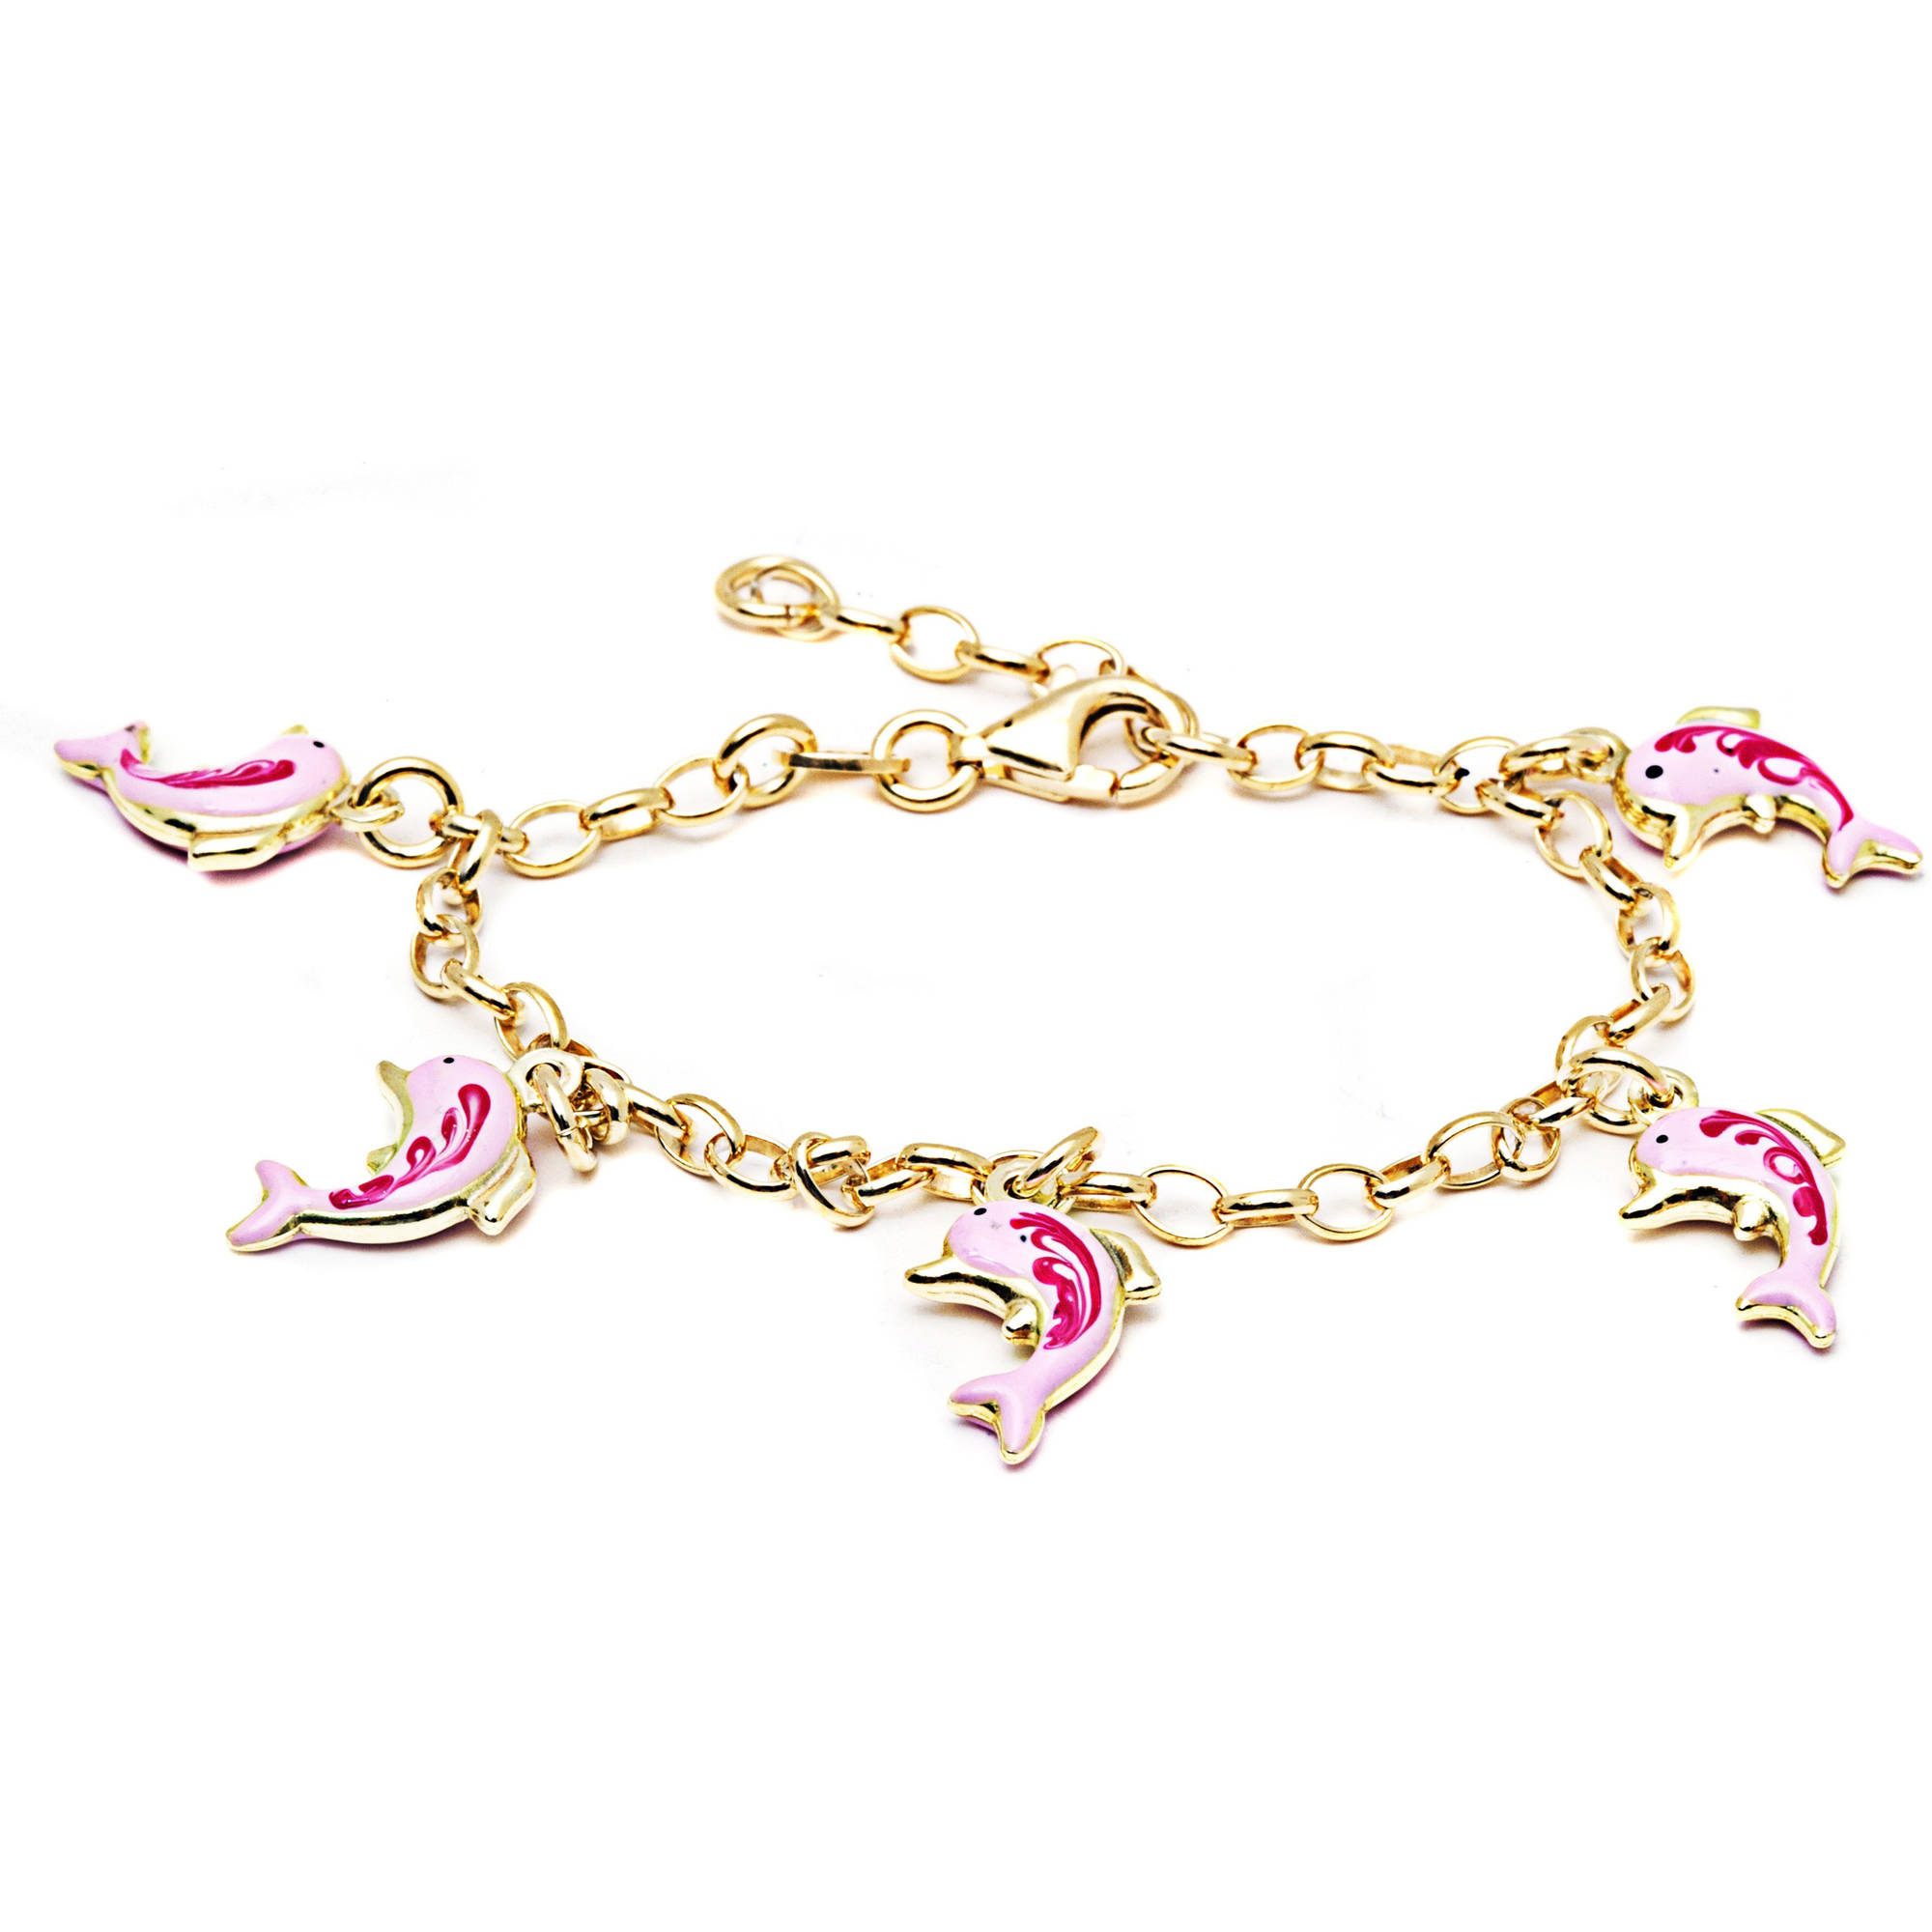 Pori Jewelers 18kt Gold-Plated Sterling Silver Baby Charm Bracelet, 6